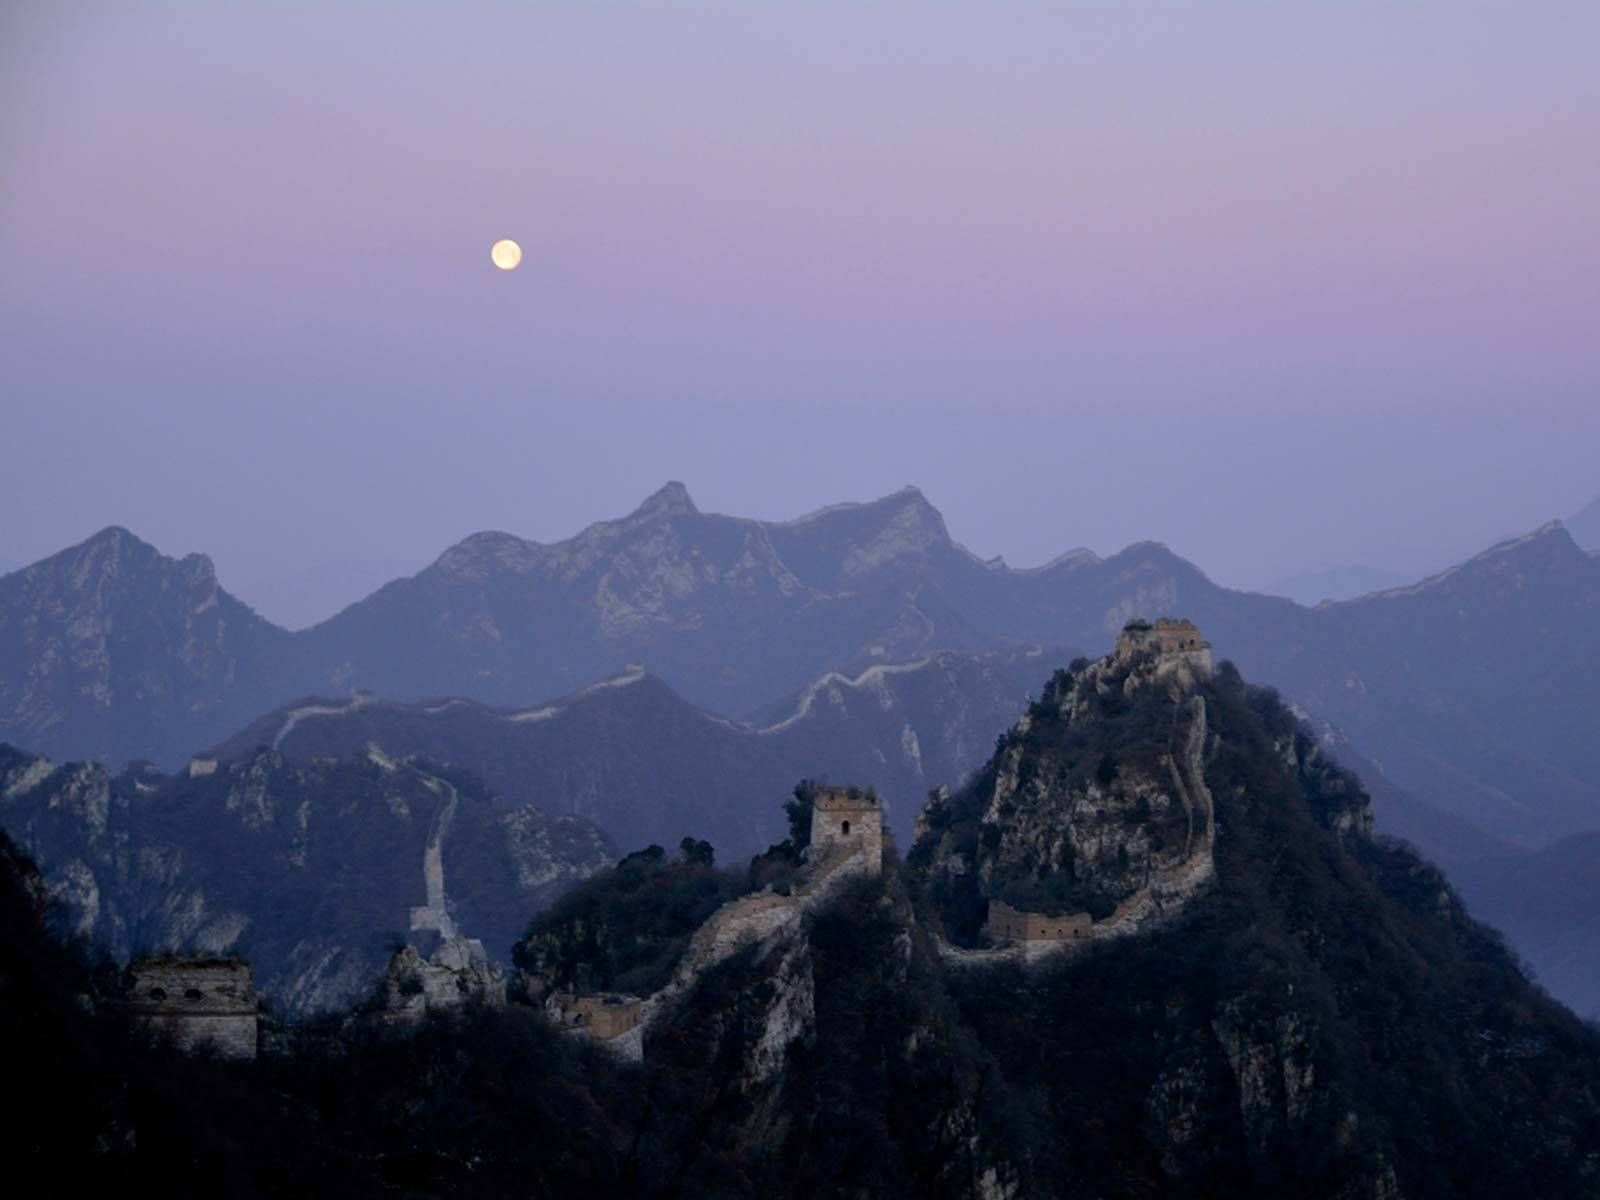 Moonrise Over the Great Wall | Space Wallpaper